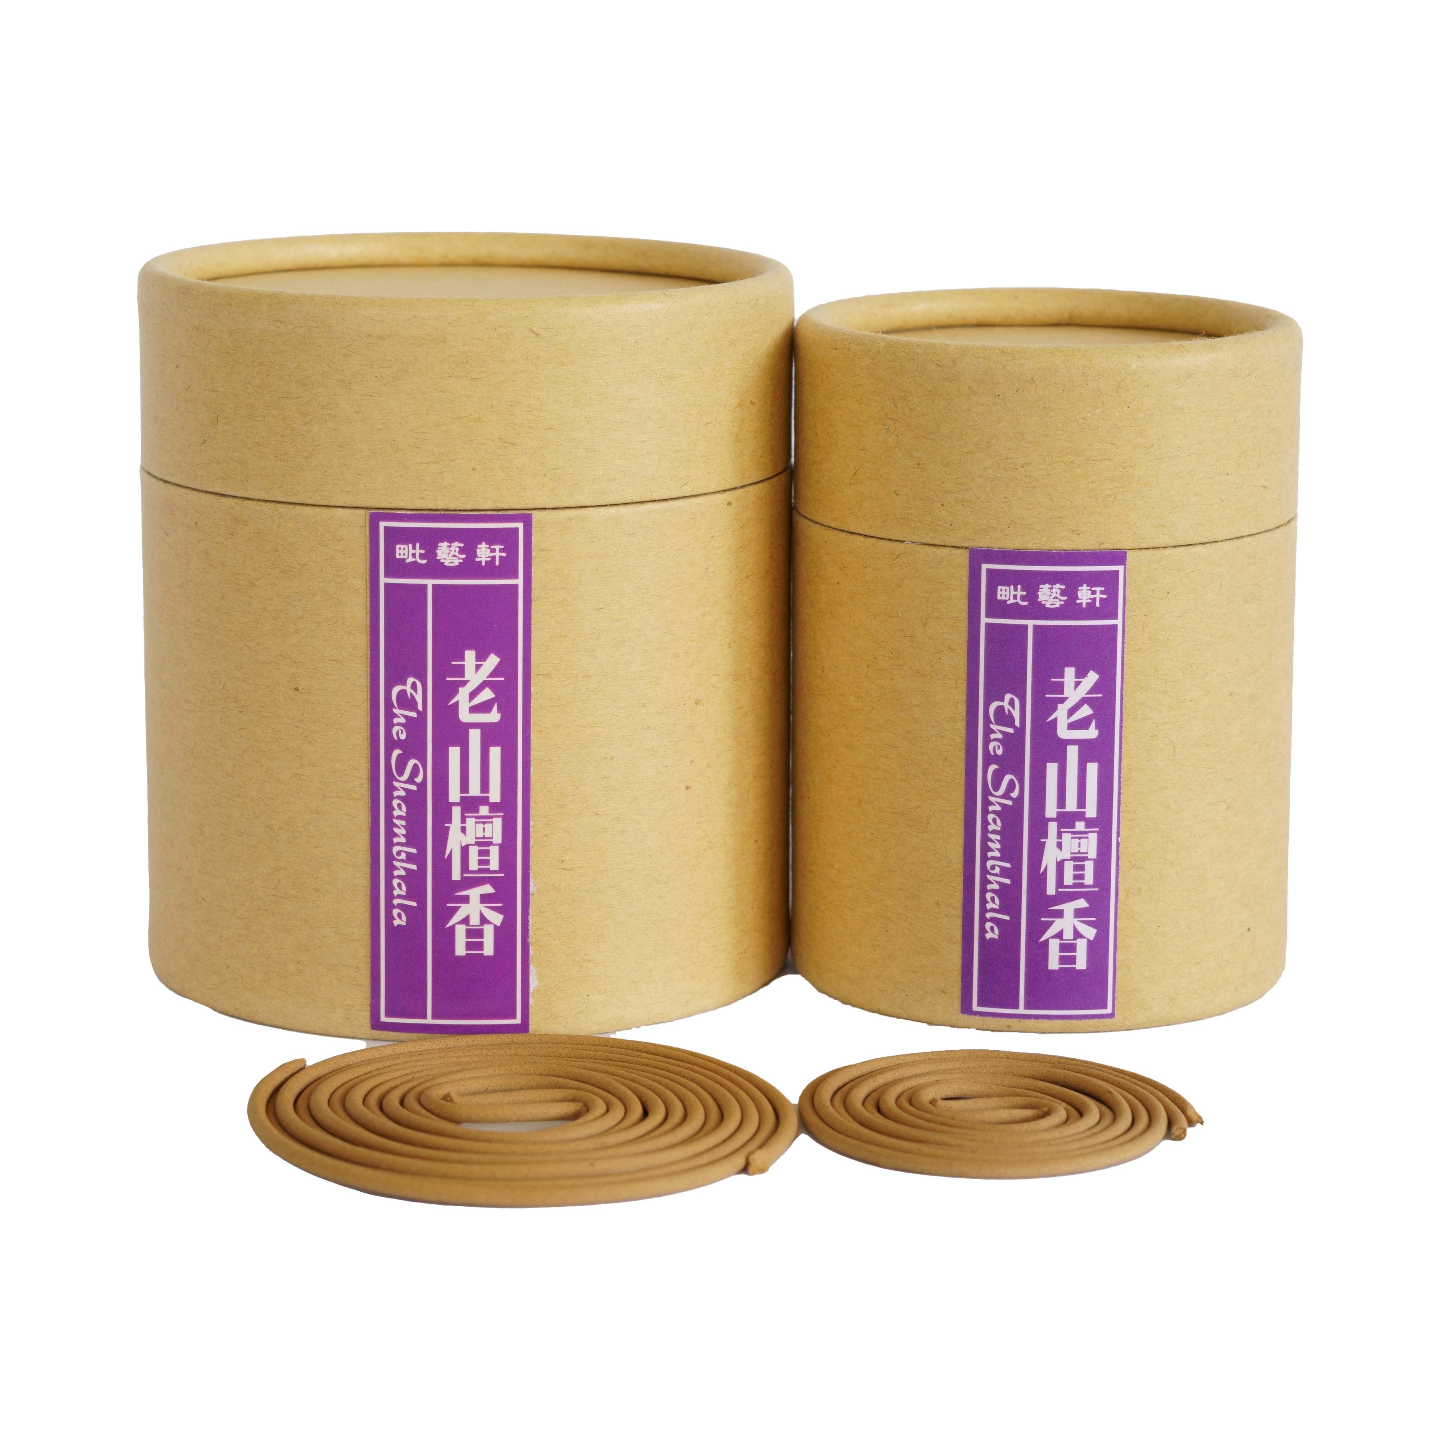 Sandalwood Incense Coils 老山檀盘香